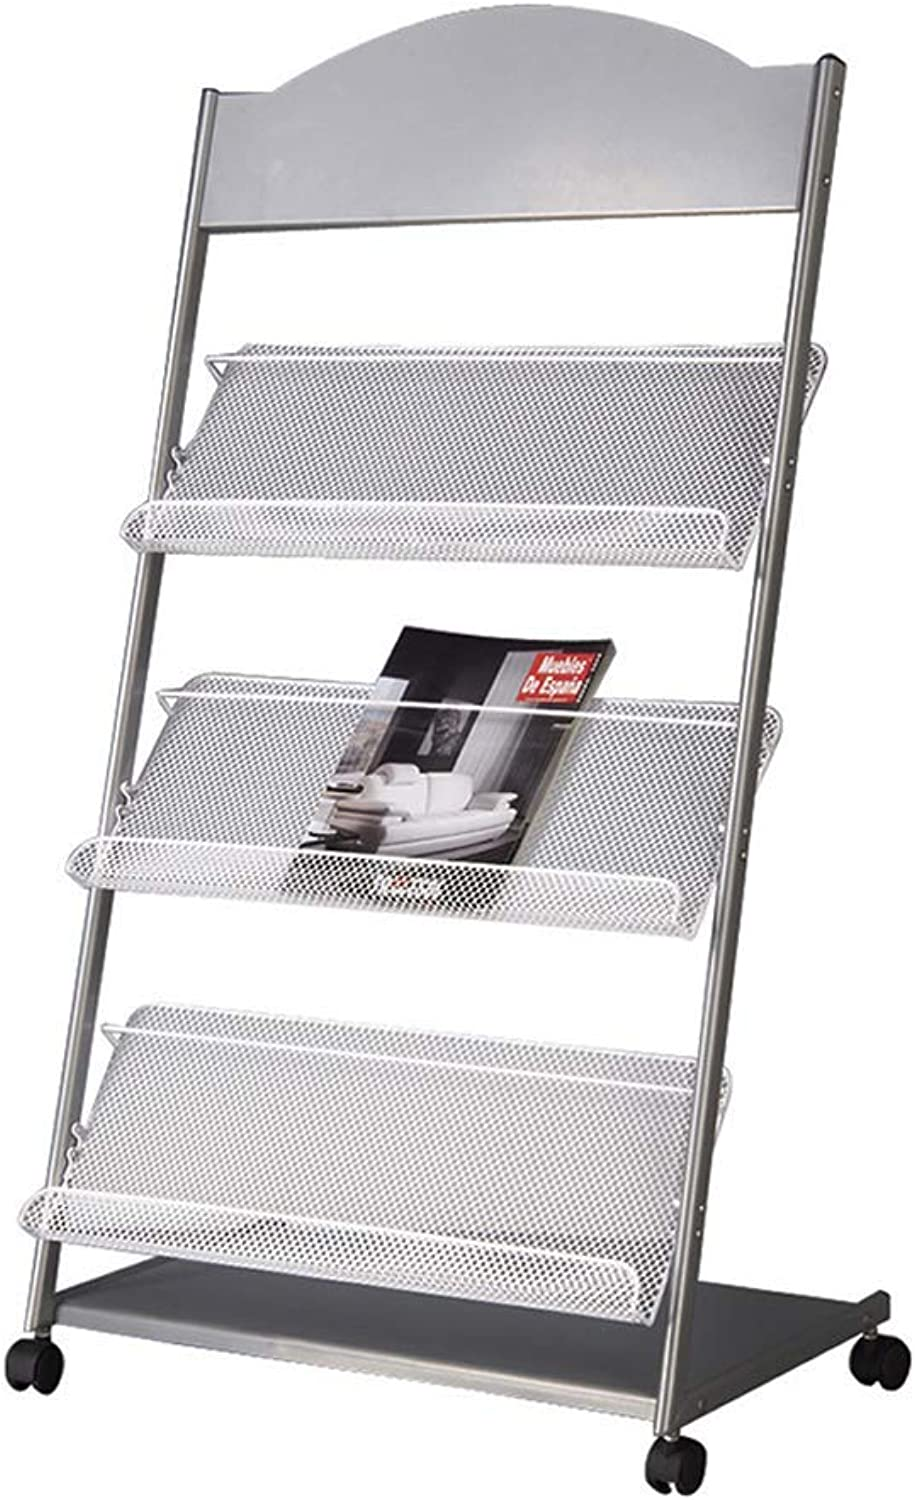 Magazine Rack with Pulleys Can Be Moved Floor Newspaper Display Rack Office Brochure Rack Multi-Layer Supermarket Door Shelf Black